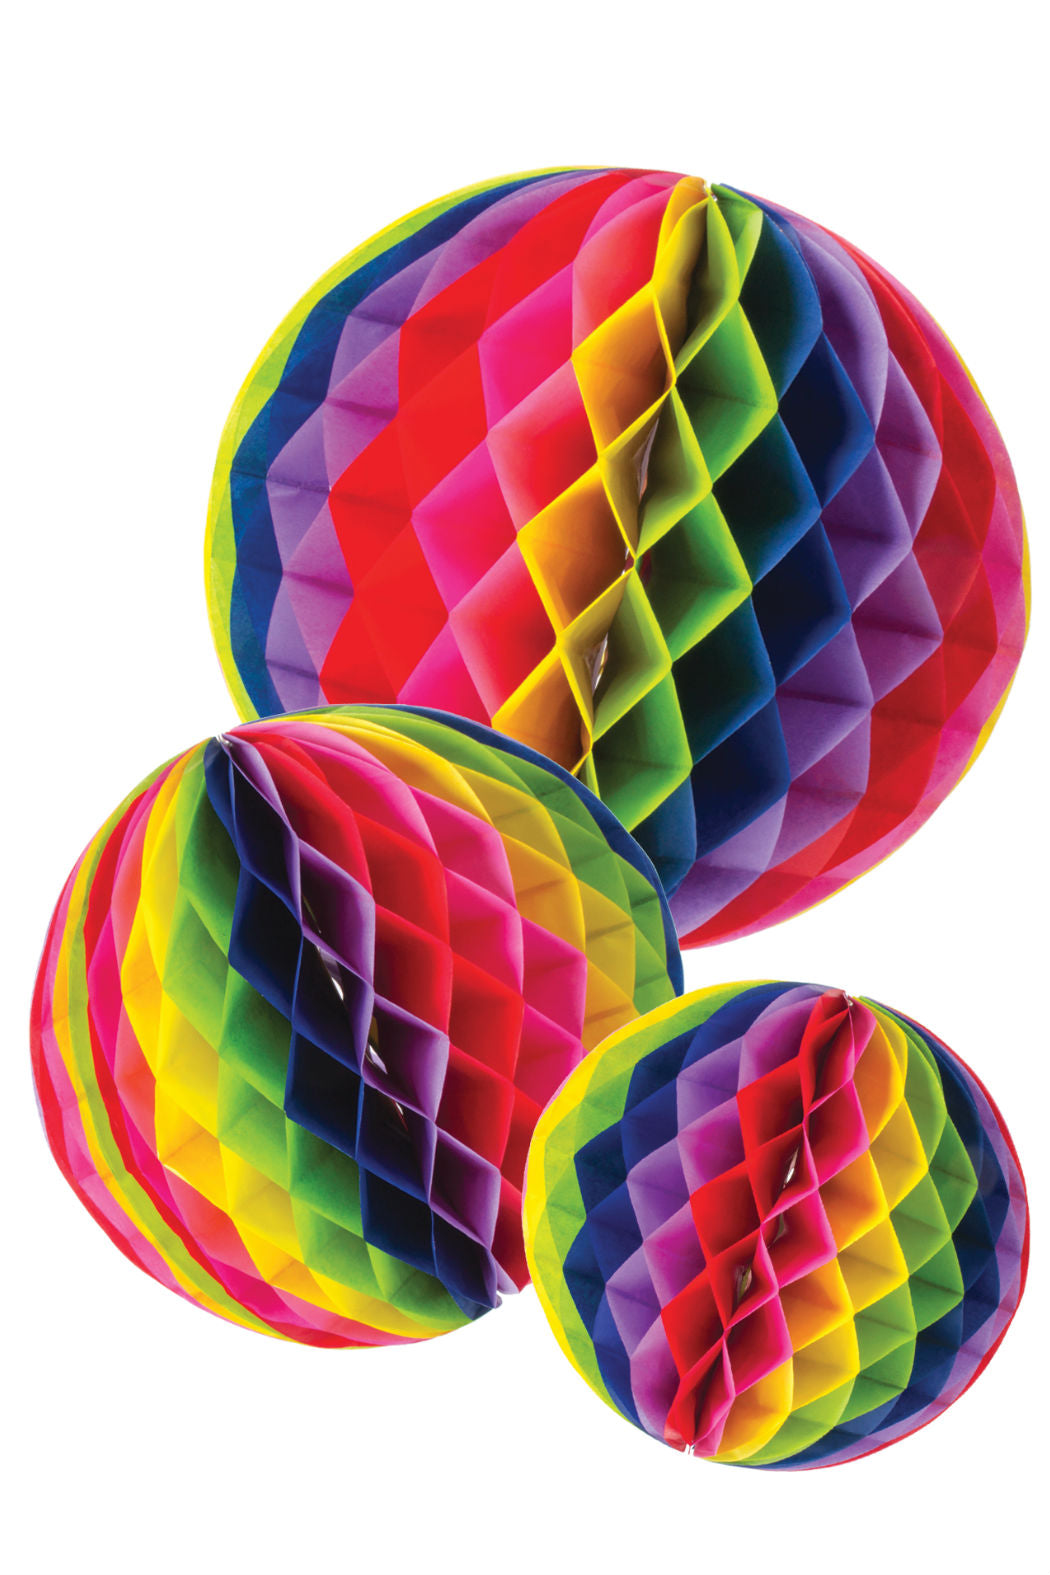 Honeycomb Tissue Balls